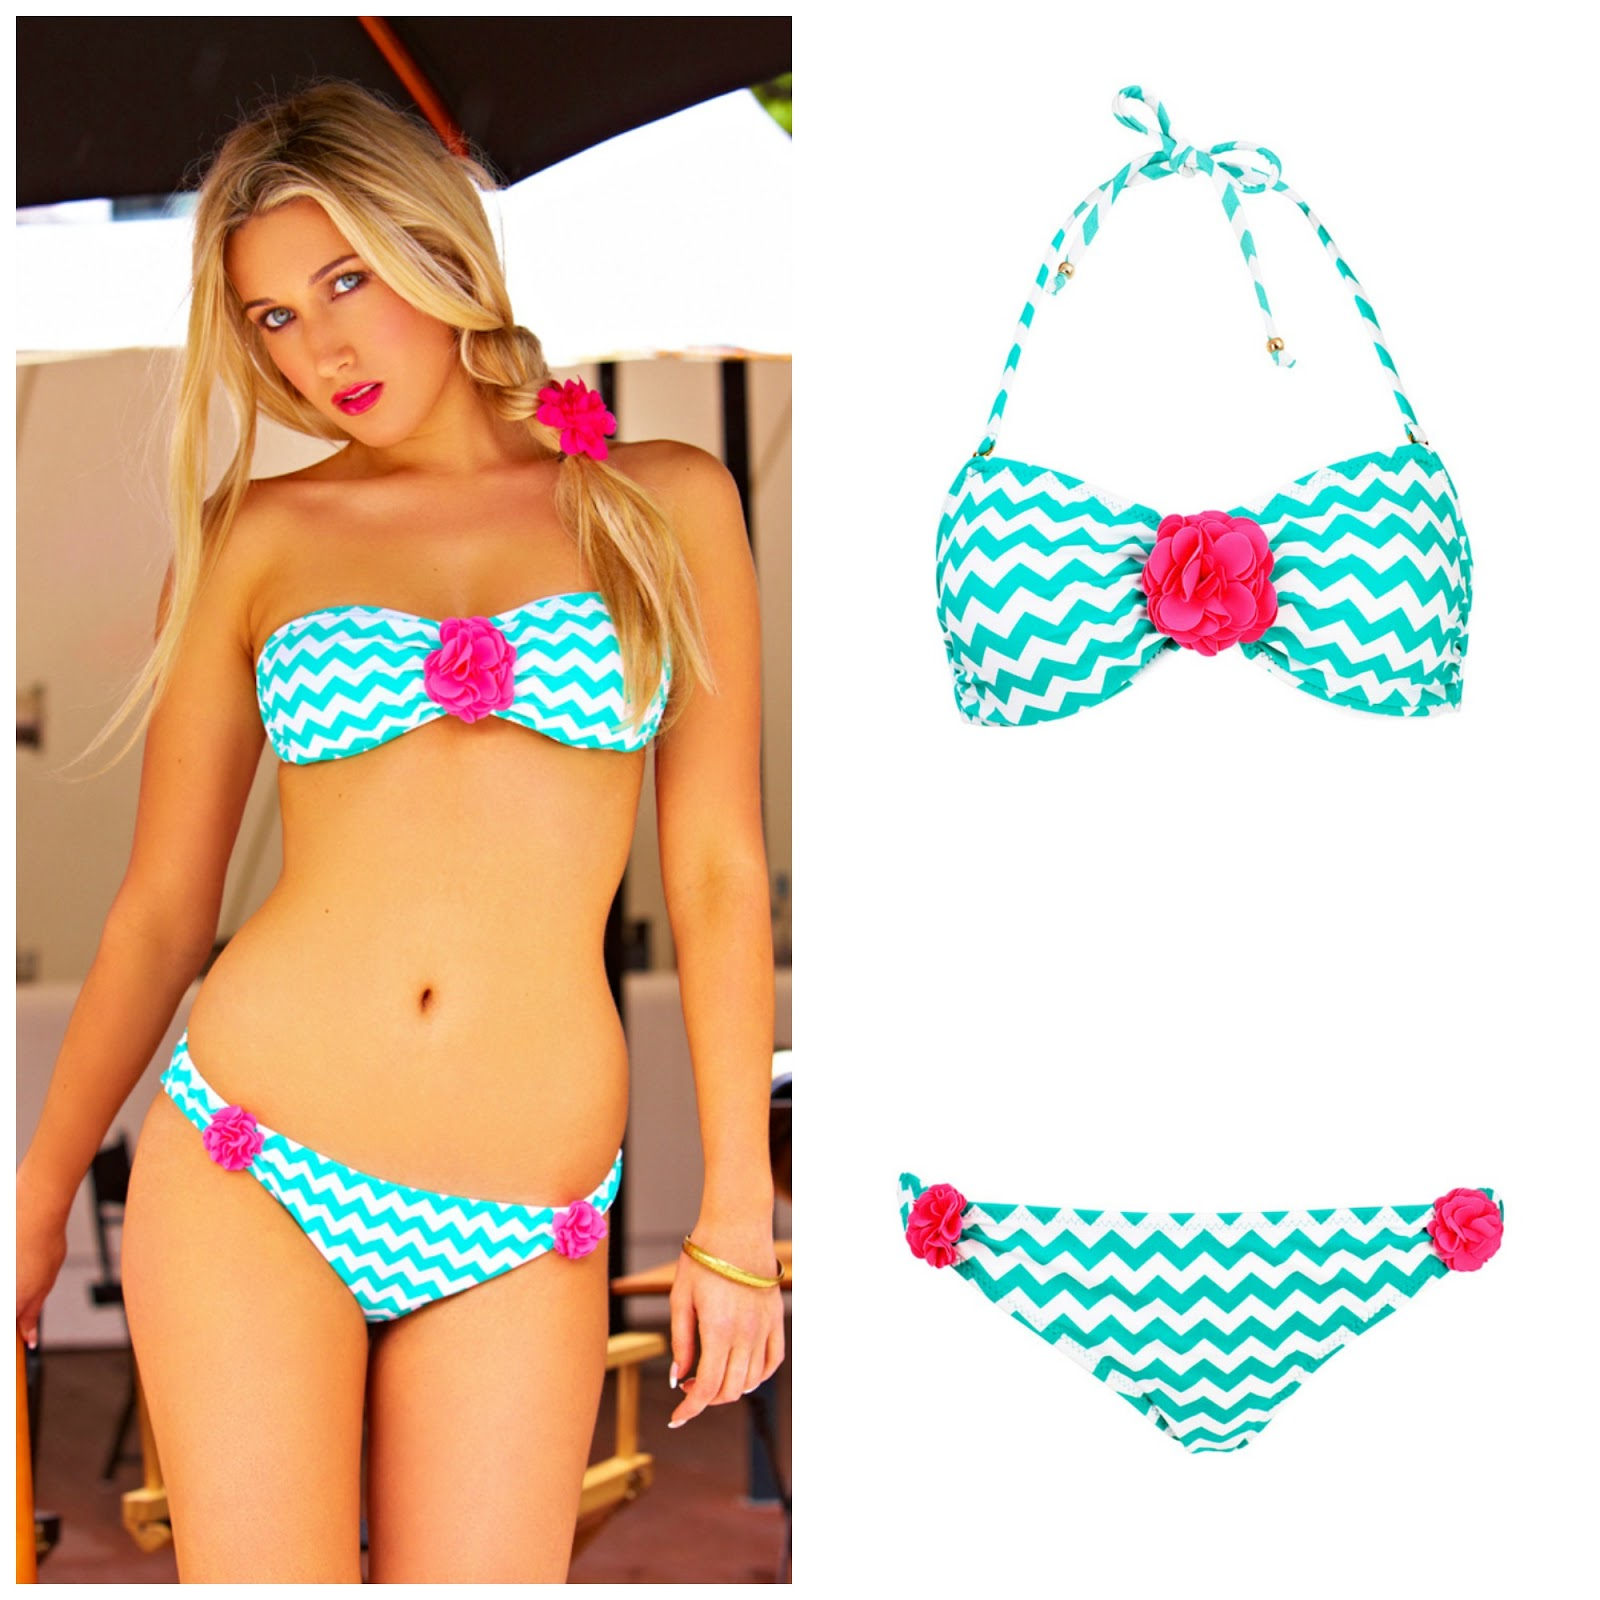 South Beach Swimsuits current Coupon! If no South Beach Swimsuits promotion code is shown here, visit South Beach Swimsuits to see if there is a discount code available. South Beach Swimsuits may not always provides a discount code or voucher.